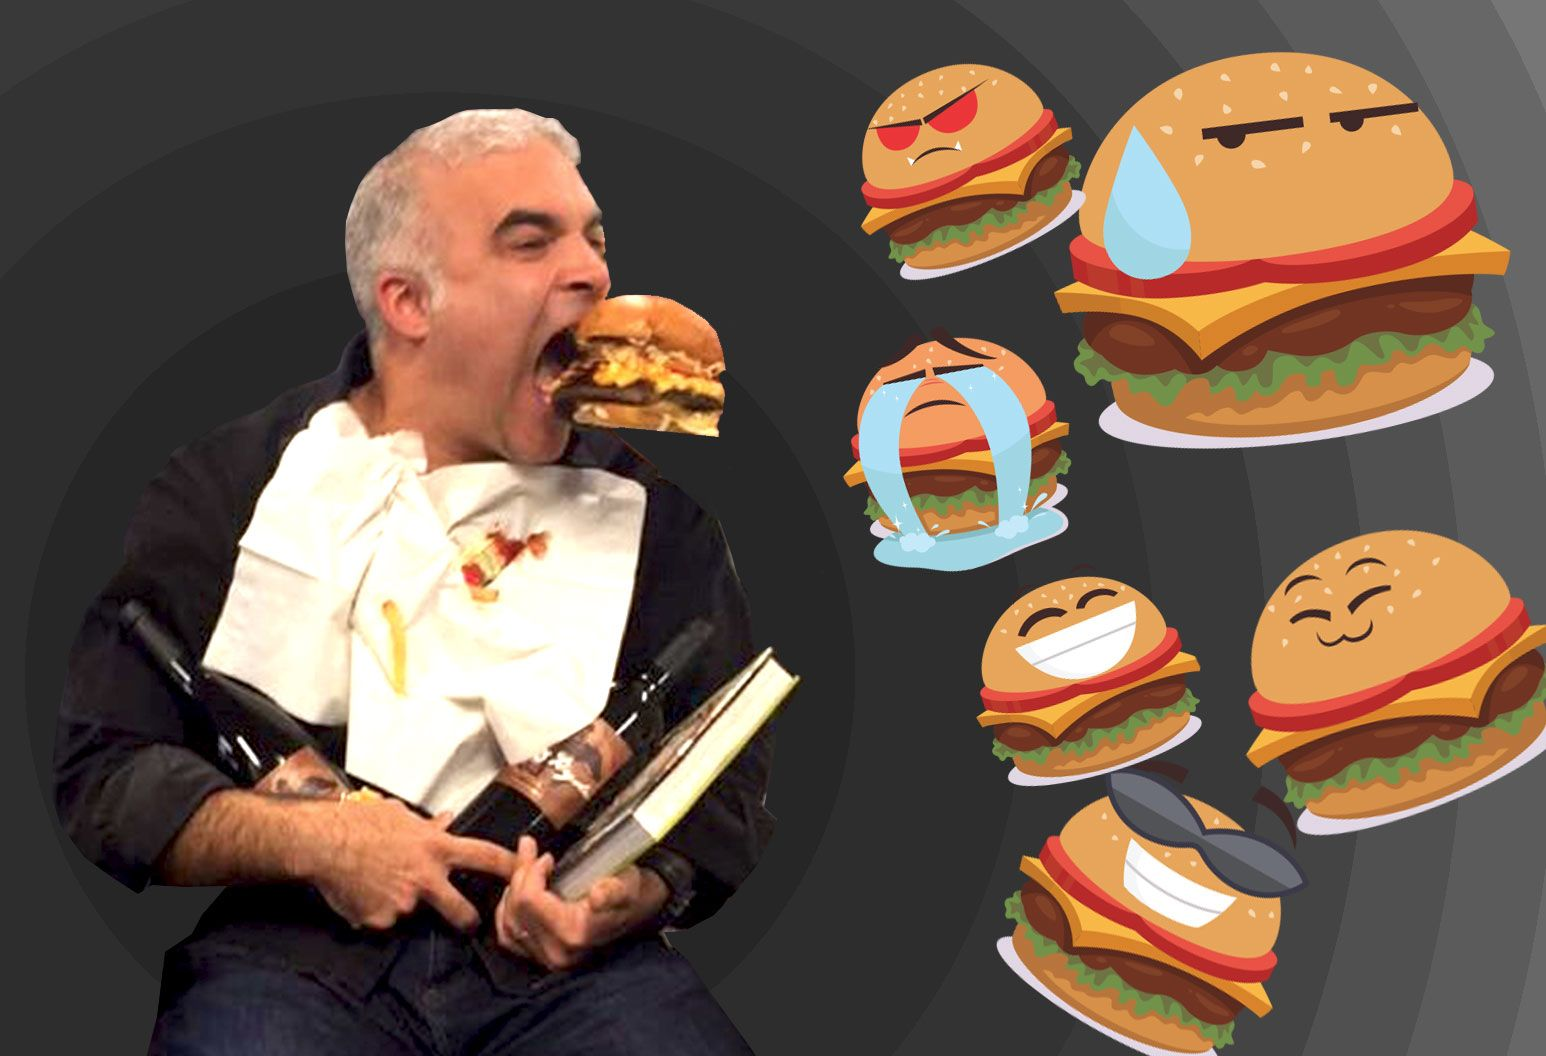 A man with short white hair holds wine bottles and a book while trying to catch a hamburger with his mouth. Surrounding him are burgers with various facial expressions on them.